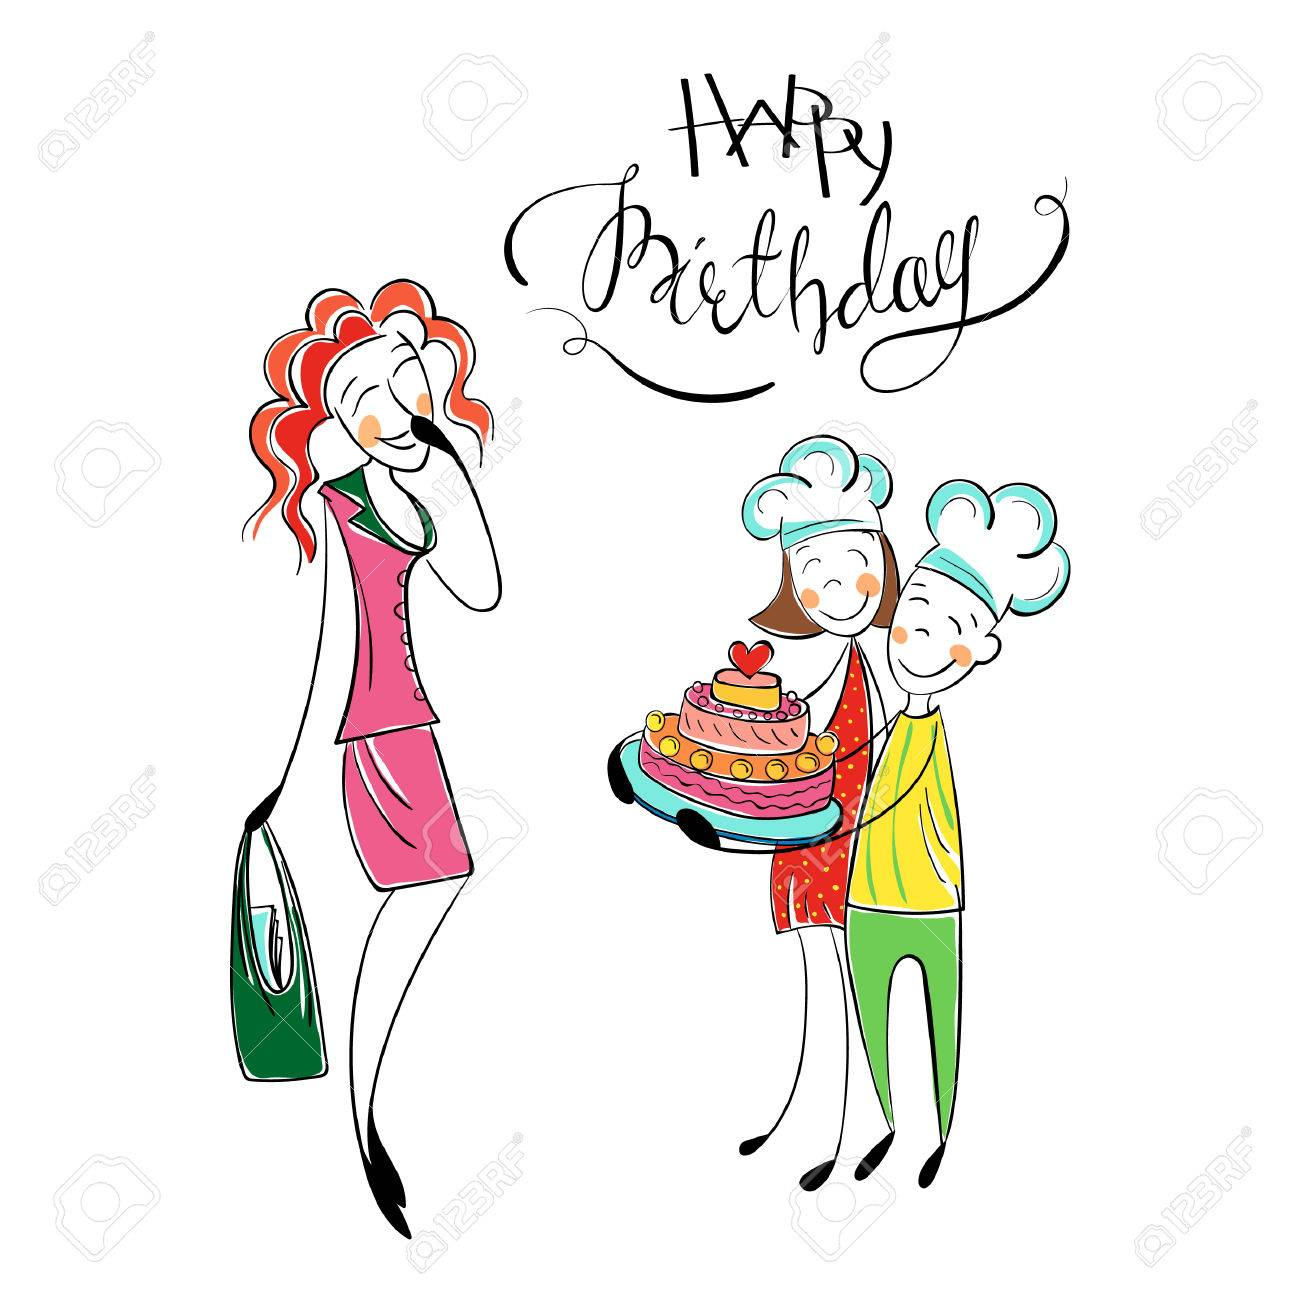 Mothers birth day happy family with kids greeting mom with cake happy family with kids greeting mom with cake children love m4hsunfo